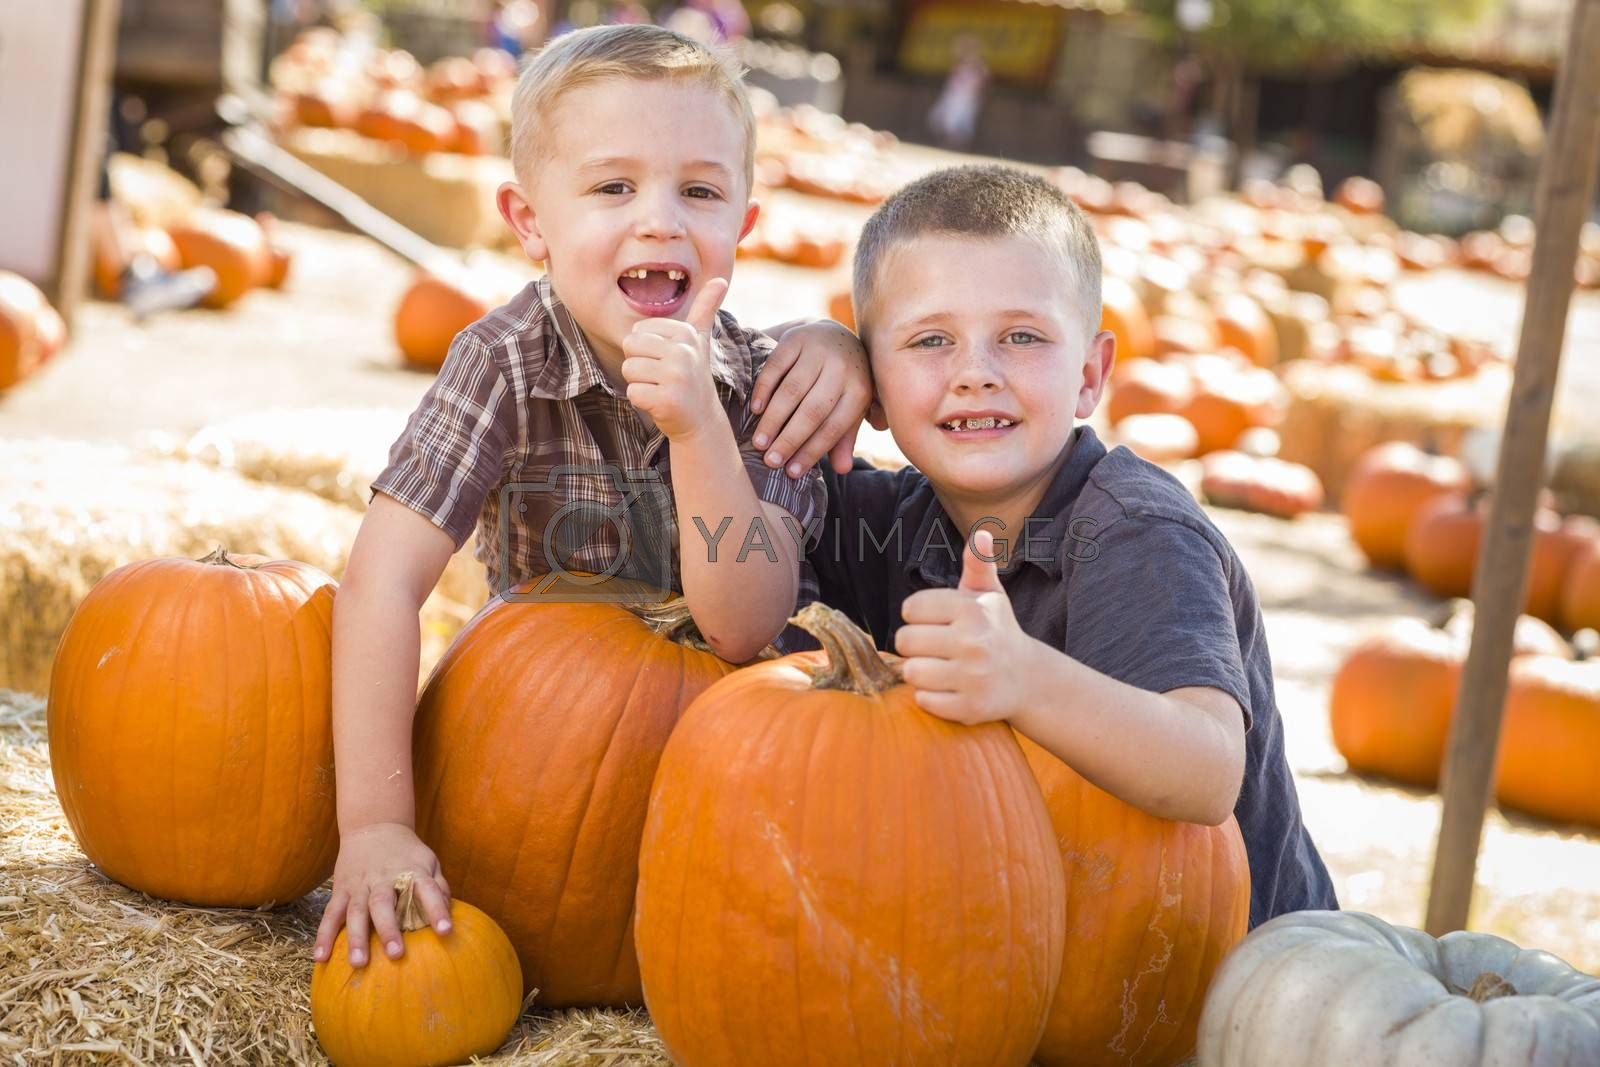 Two Boys at the Pumpkin Patch with Thumbs Up and Having Fun on a Fall Day.